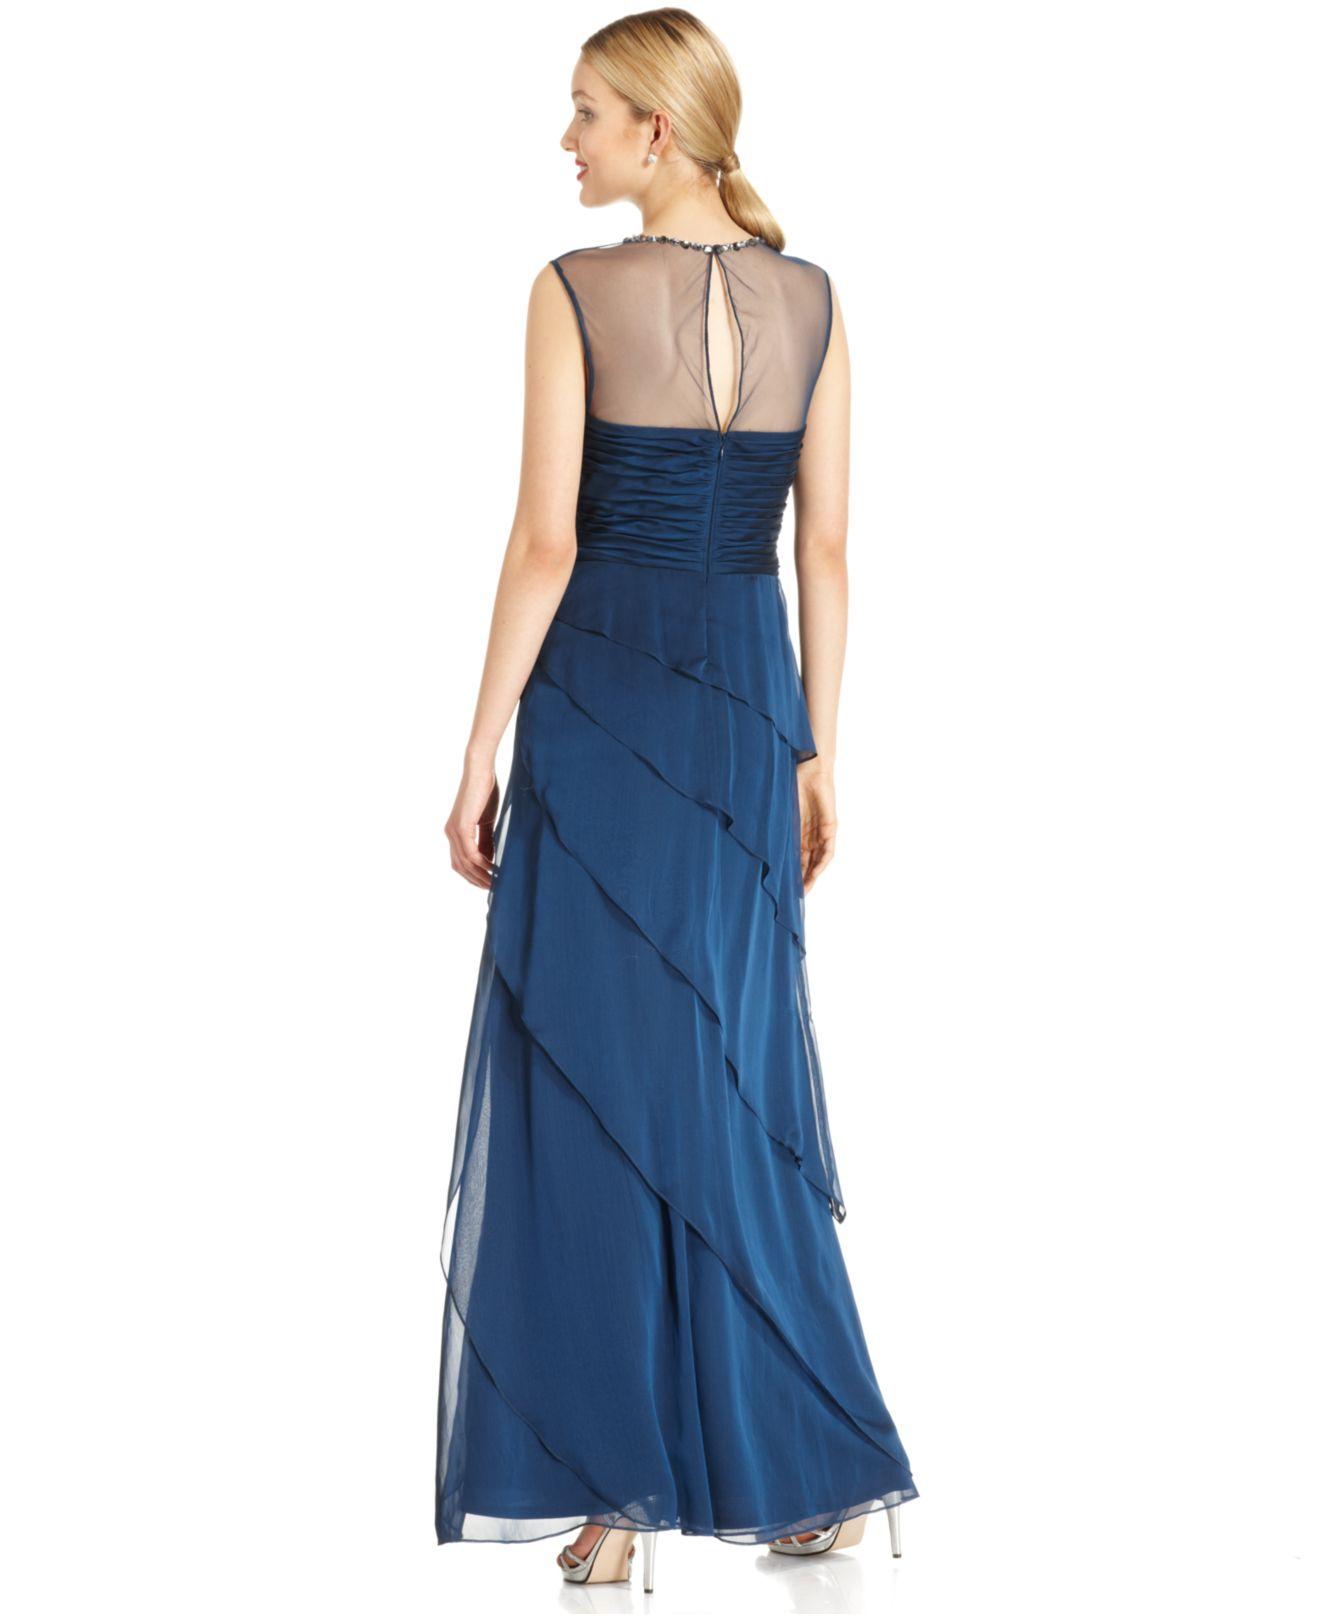 Lyst - Adrianna Papell Sleeveless Beaded Tiered Gown in Blue